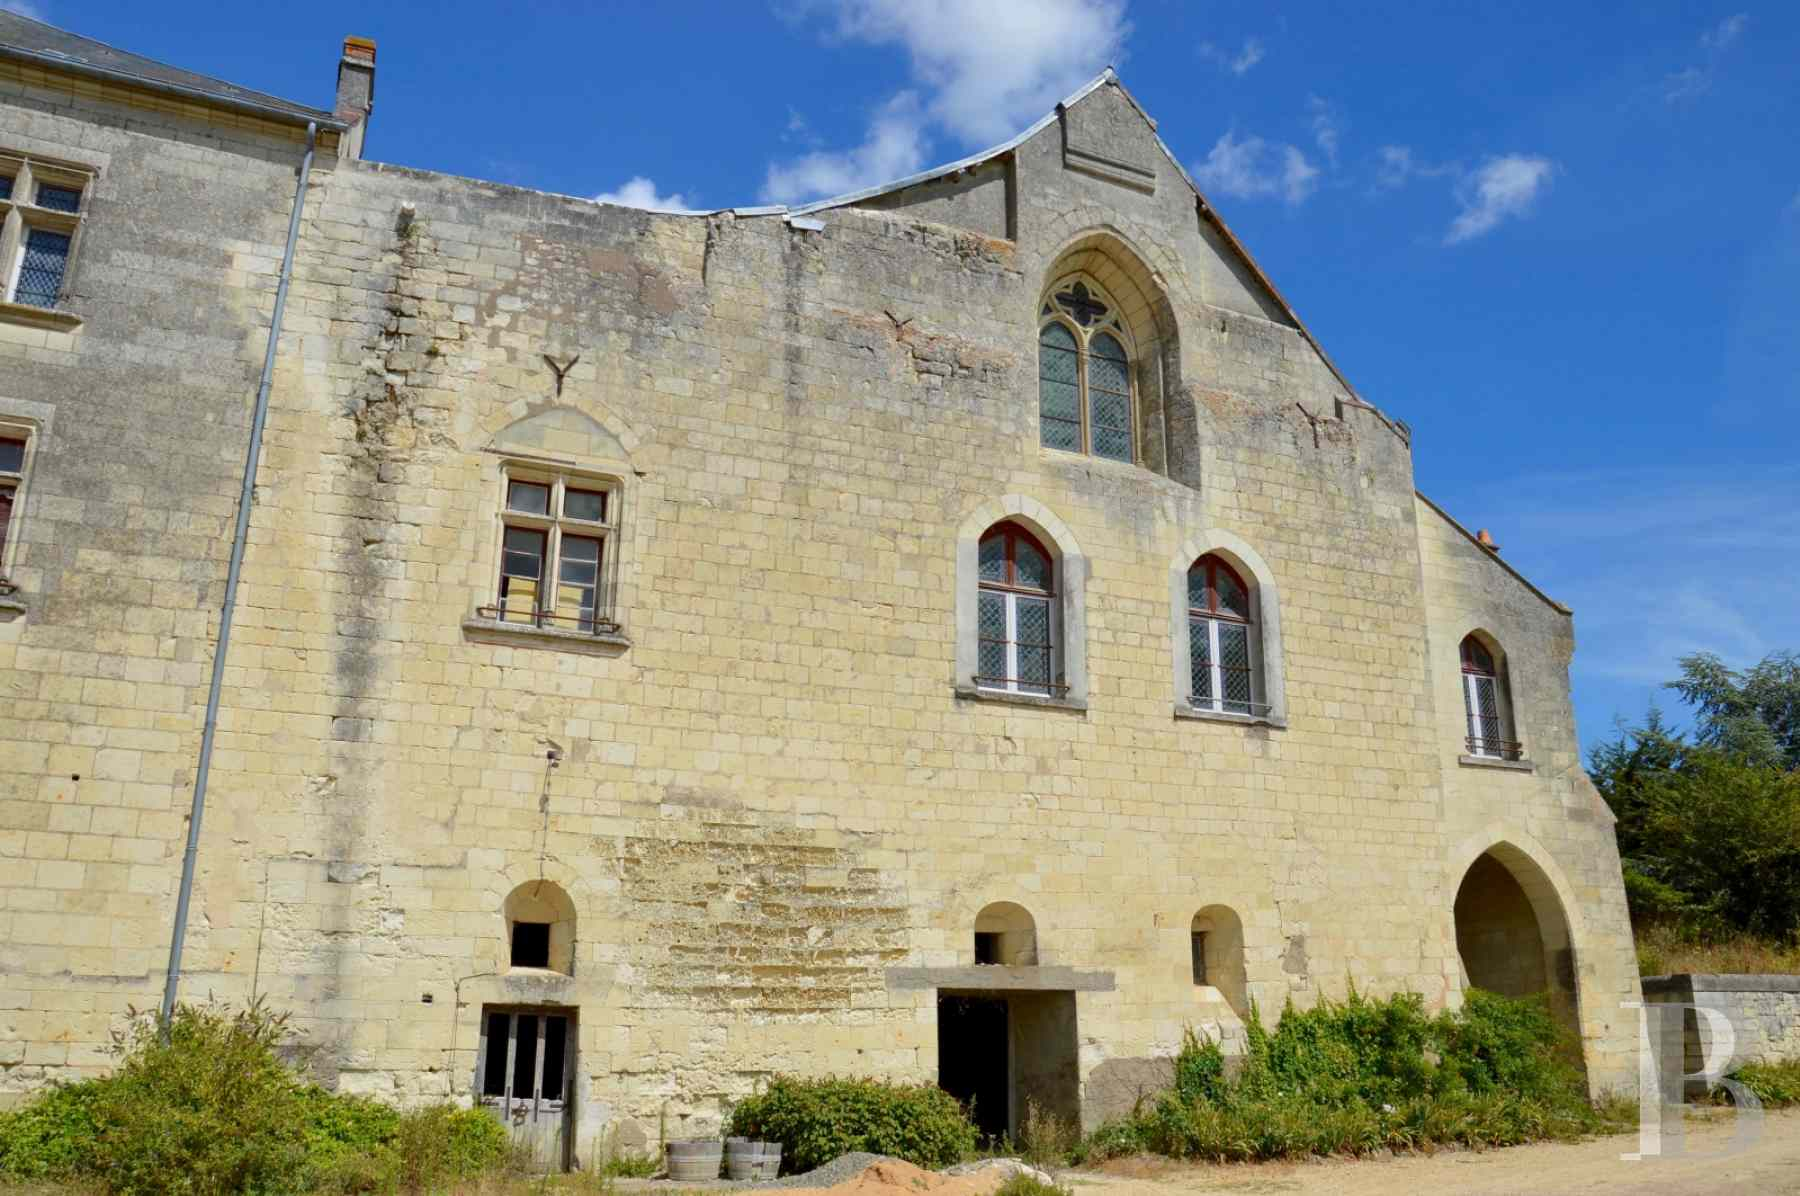 chateaux for sale France poitou charentes 12th century - 4 zoom